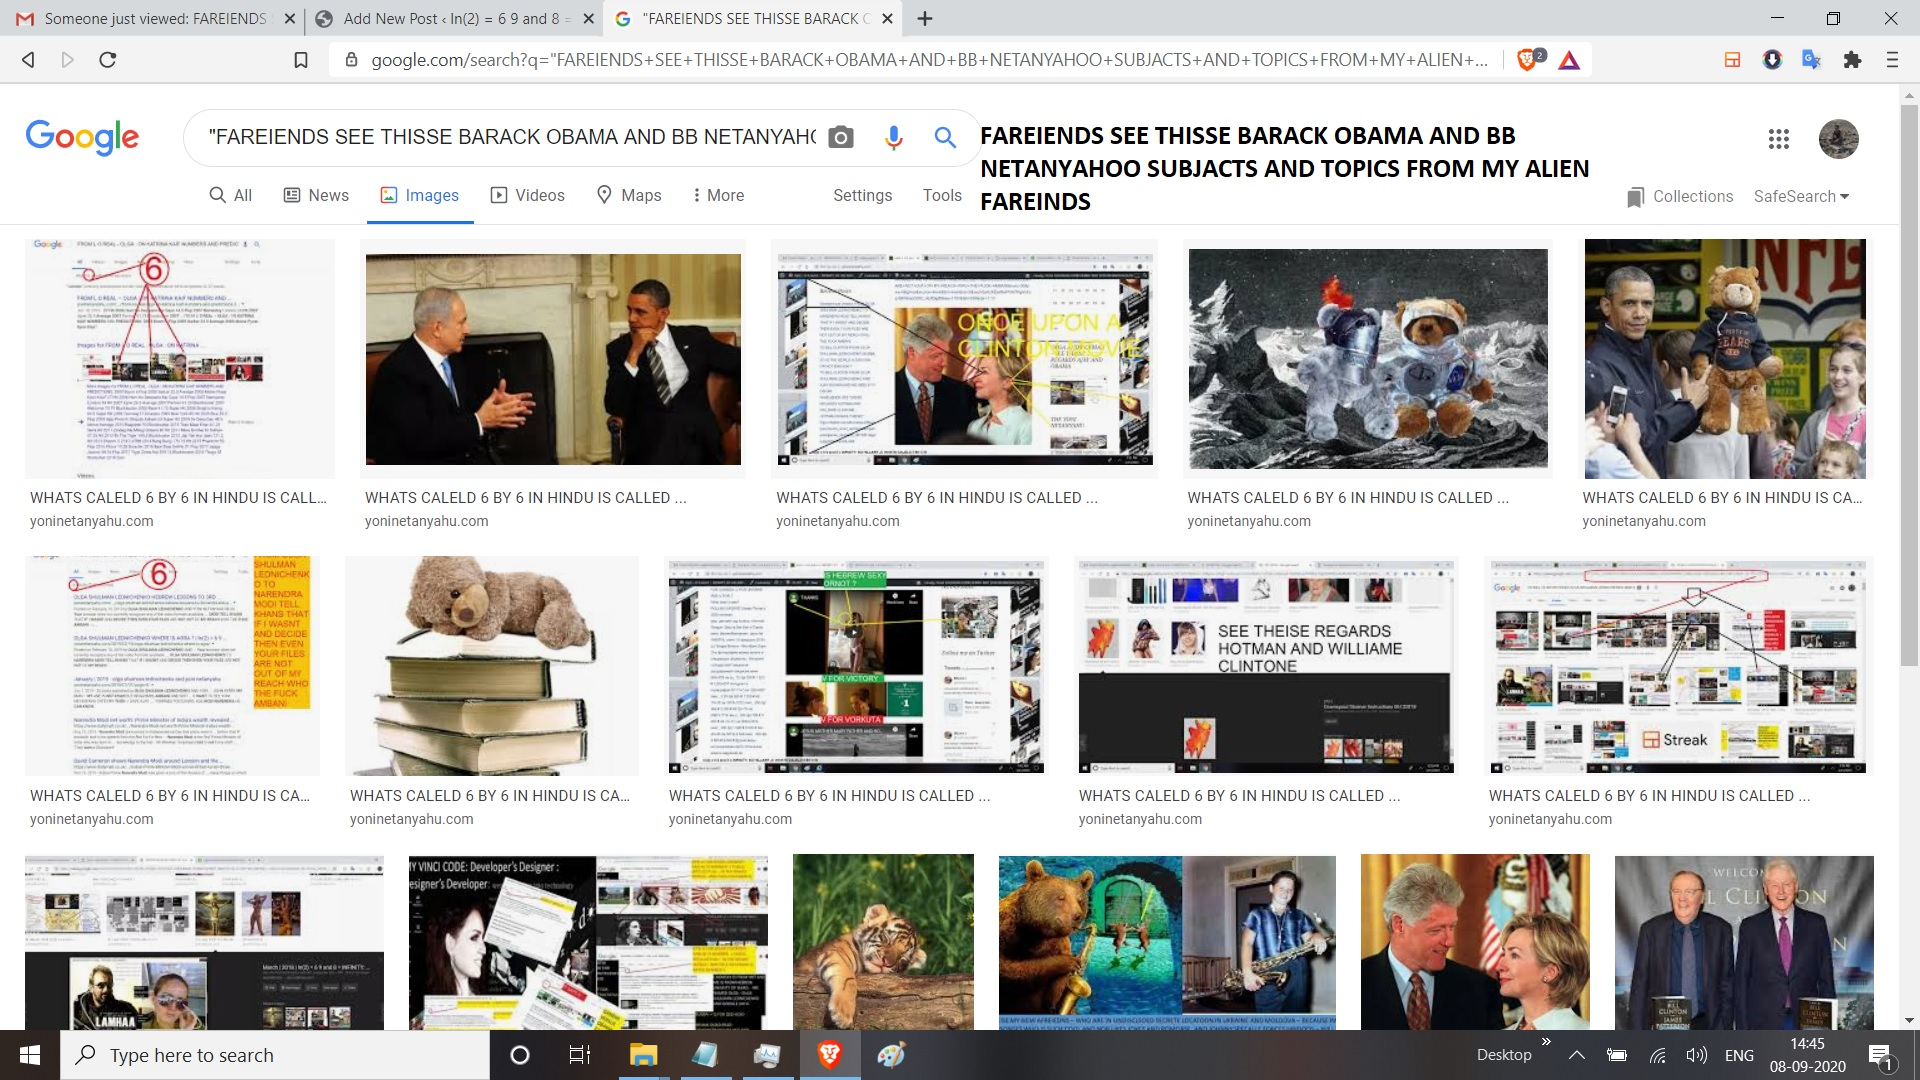 FAREIENDS SEE THISSE BARACK OBAMA AND BB NETANYAHOO SUBJACTS AND TOPICS FROM MY ALIEN FAREINDS